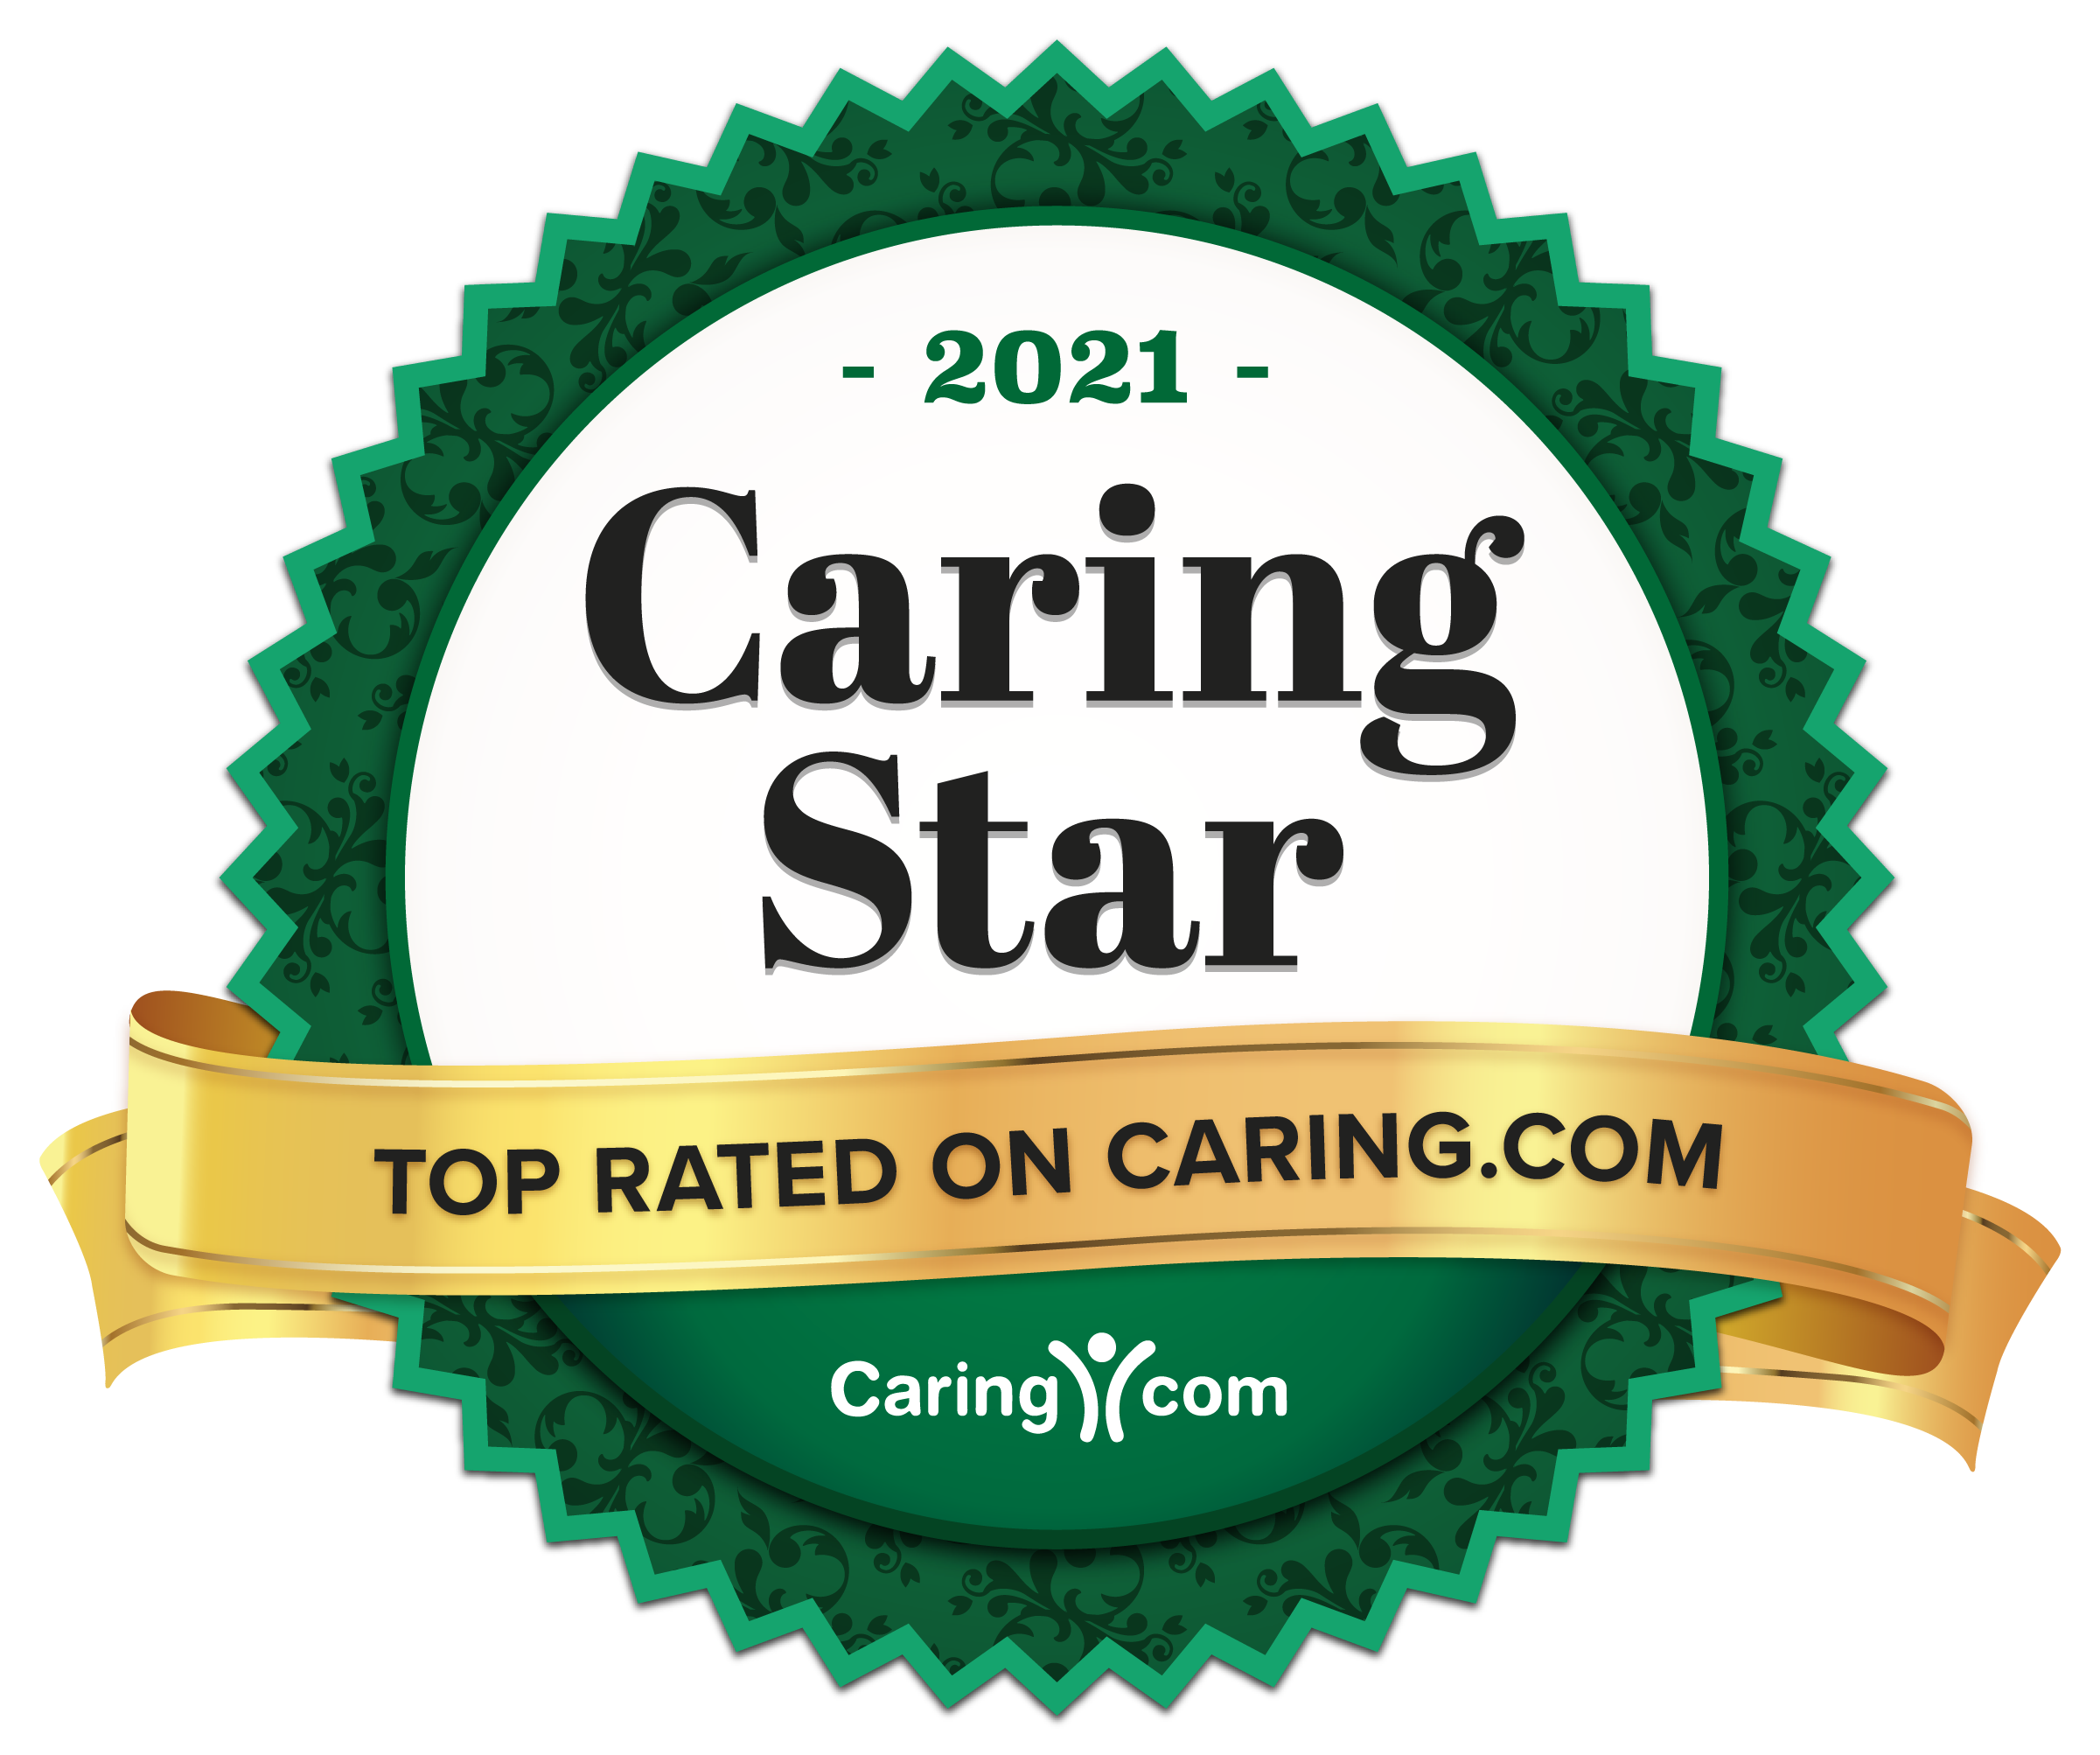 Healdsburg, A Pacifica Senior Living Community is a Caring.com Caring Star Community for 2021!